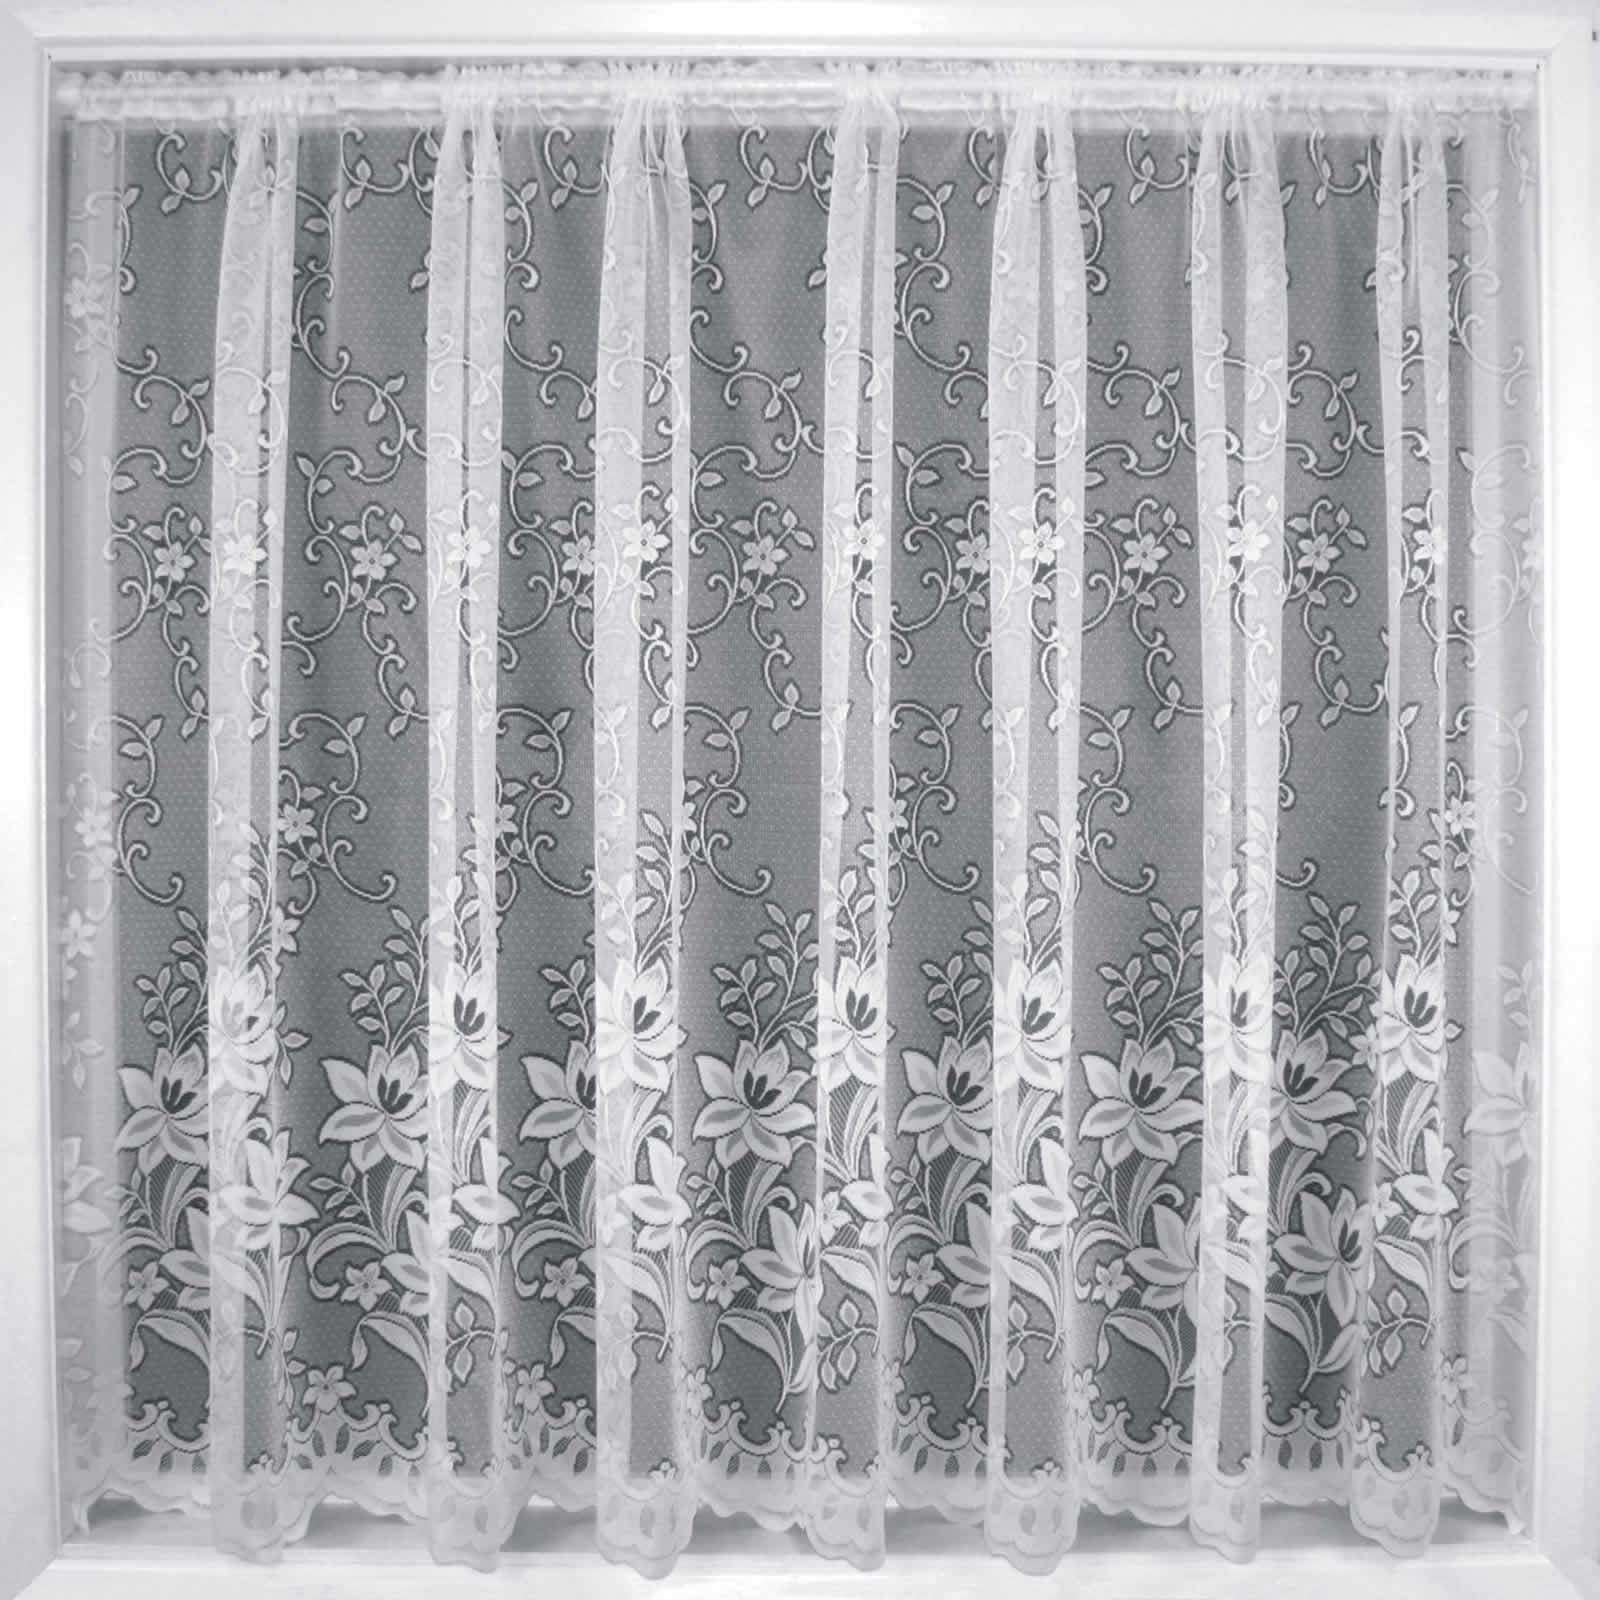 MODERN WHITE SHEERS NET CURTAIN LUXURY LACE CURTAINS NETS SOLD BY